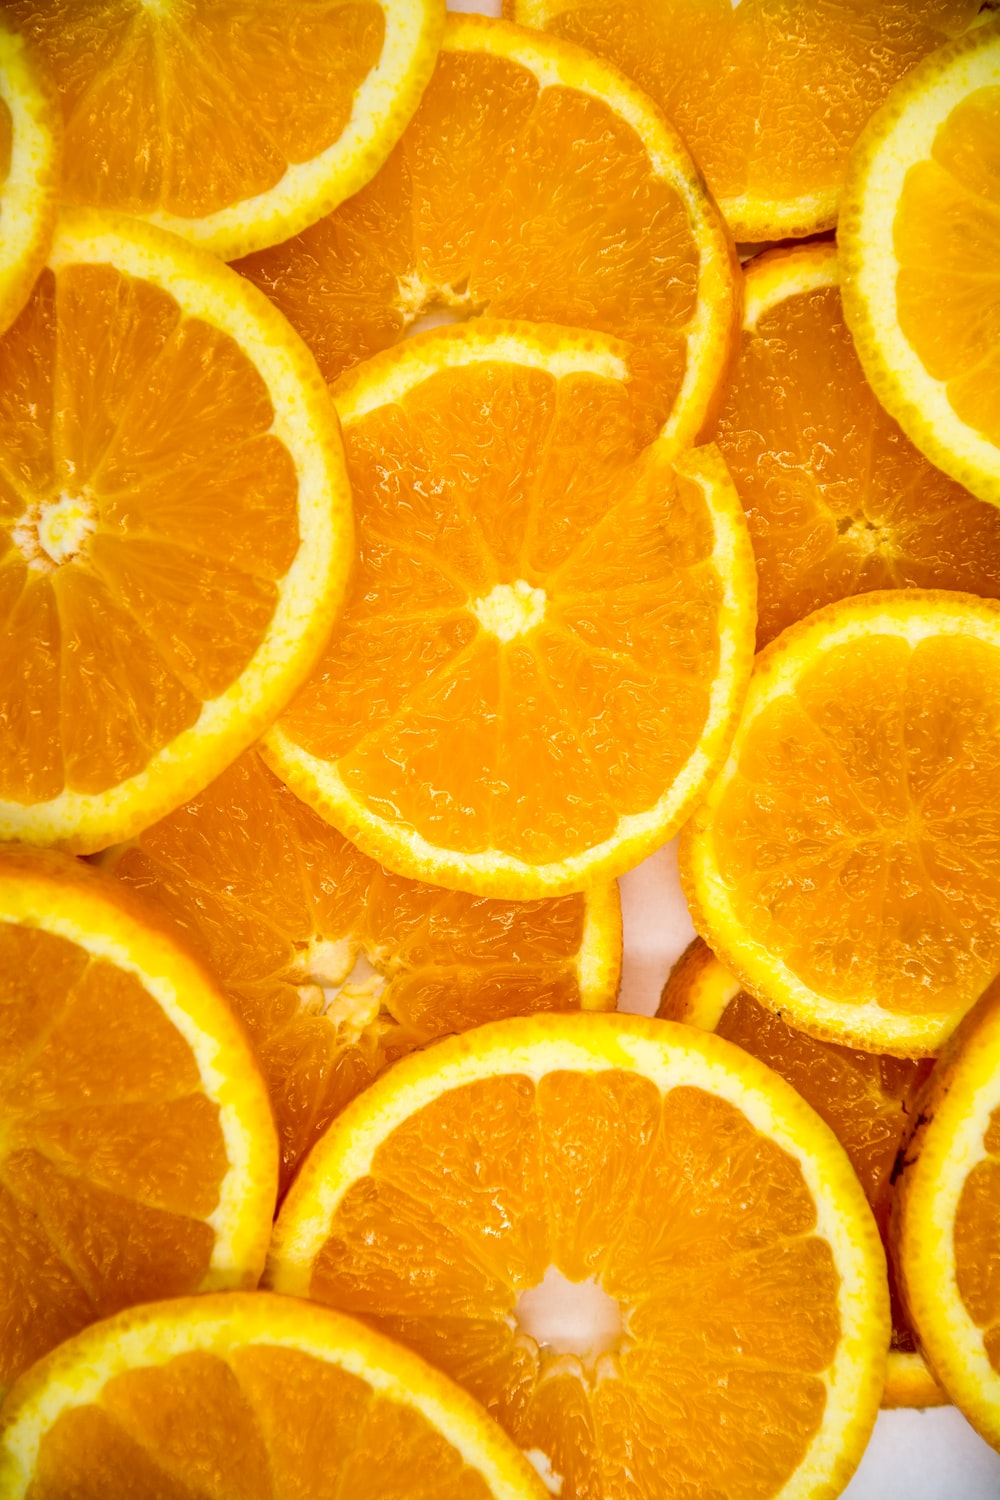 sliced of tangerine fruits